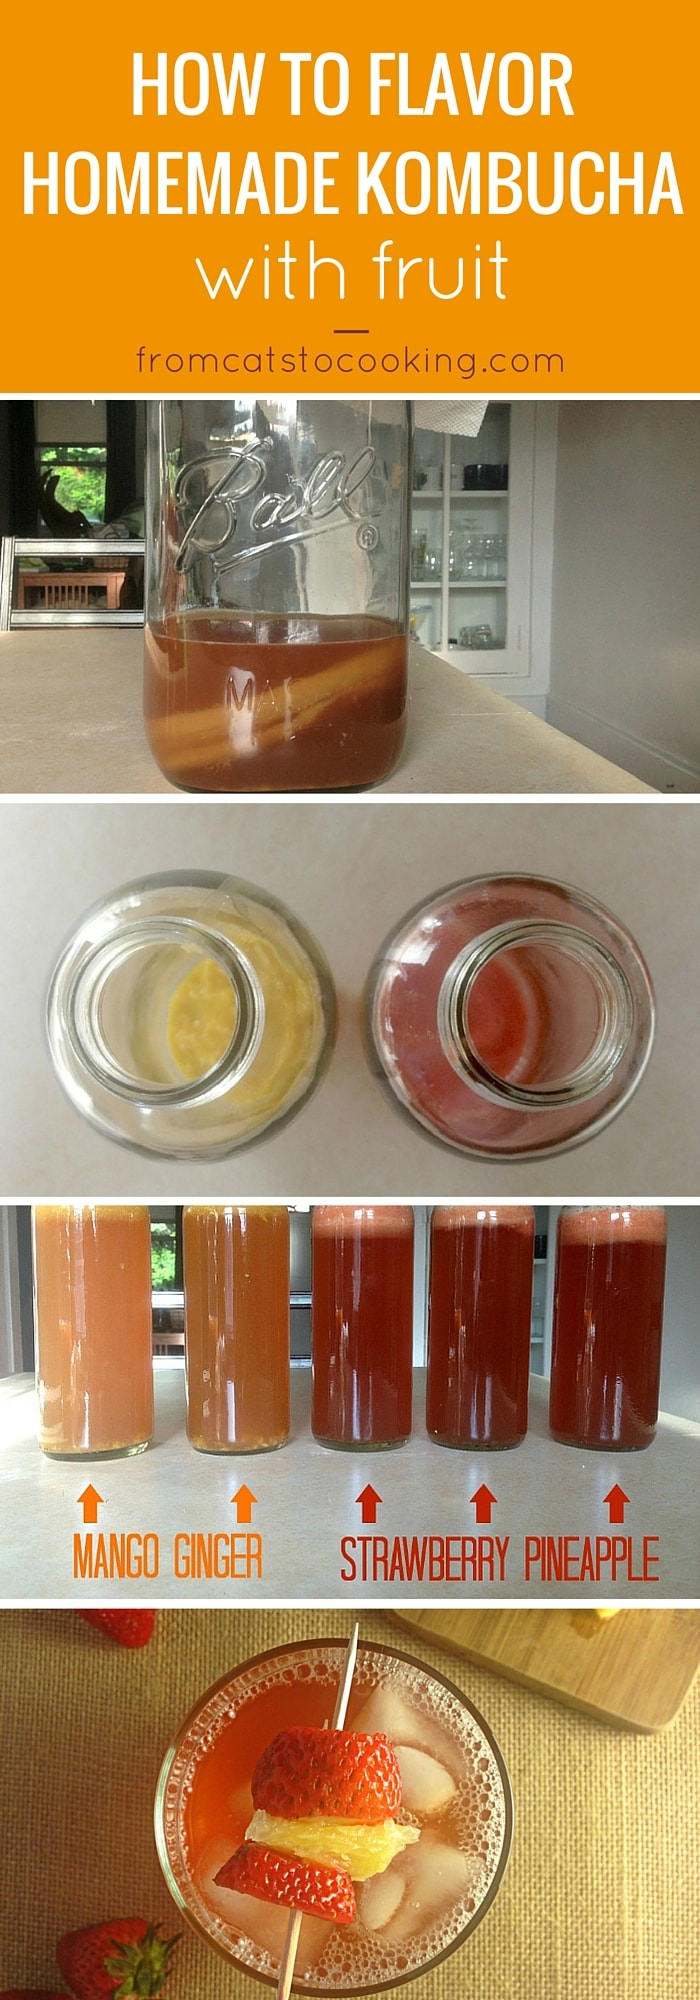 How to Flavor Homemade Kombucha with Fruit - mango ginger and strawberry pineapple flavors (healthy, probiotics, fermented tea drink, easy recipe)